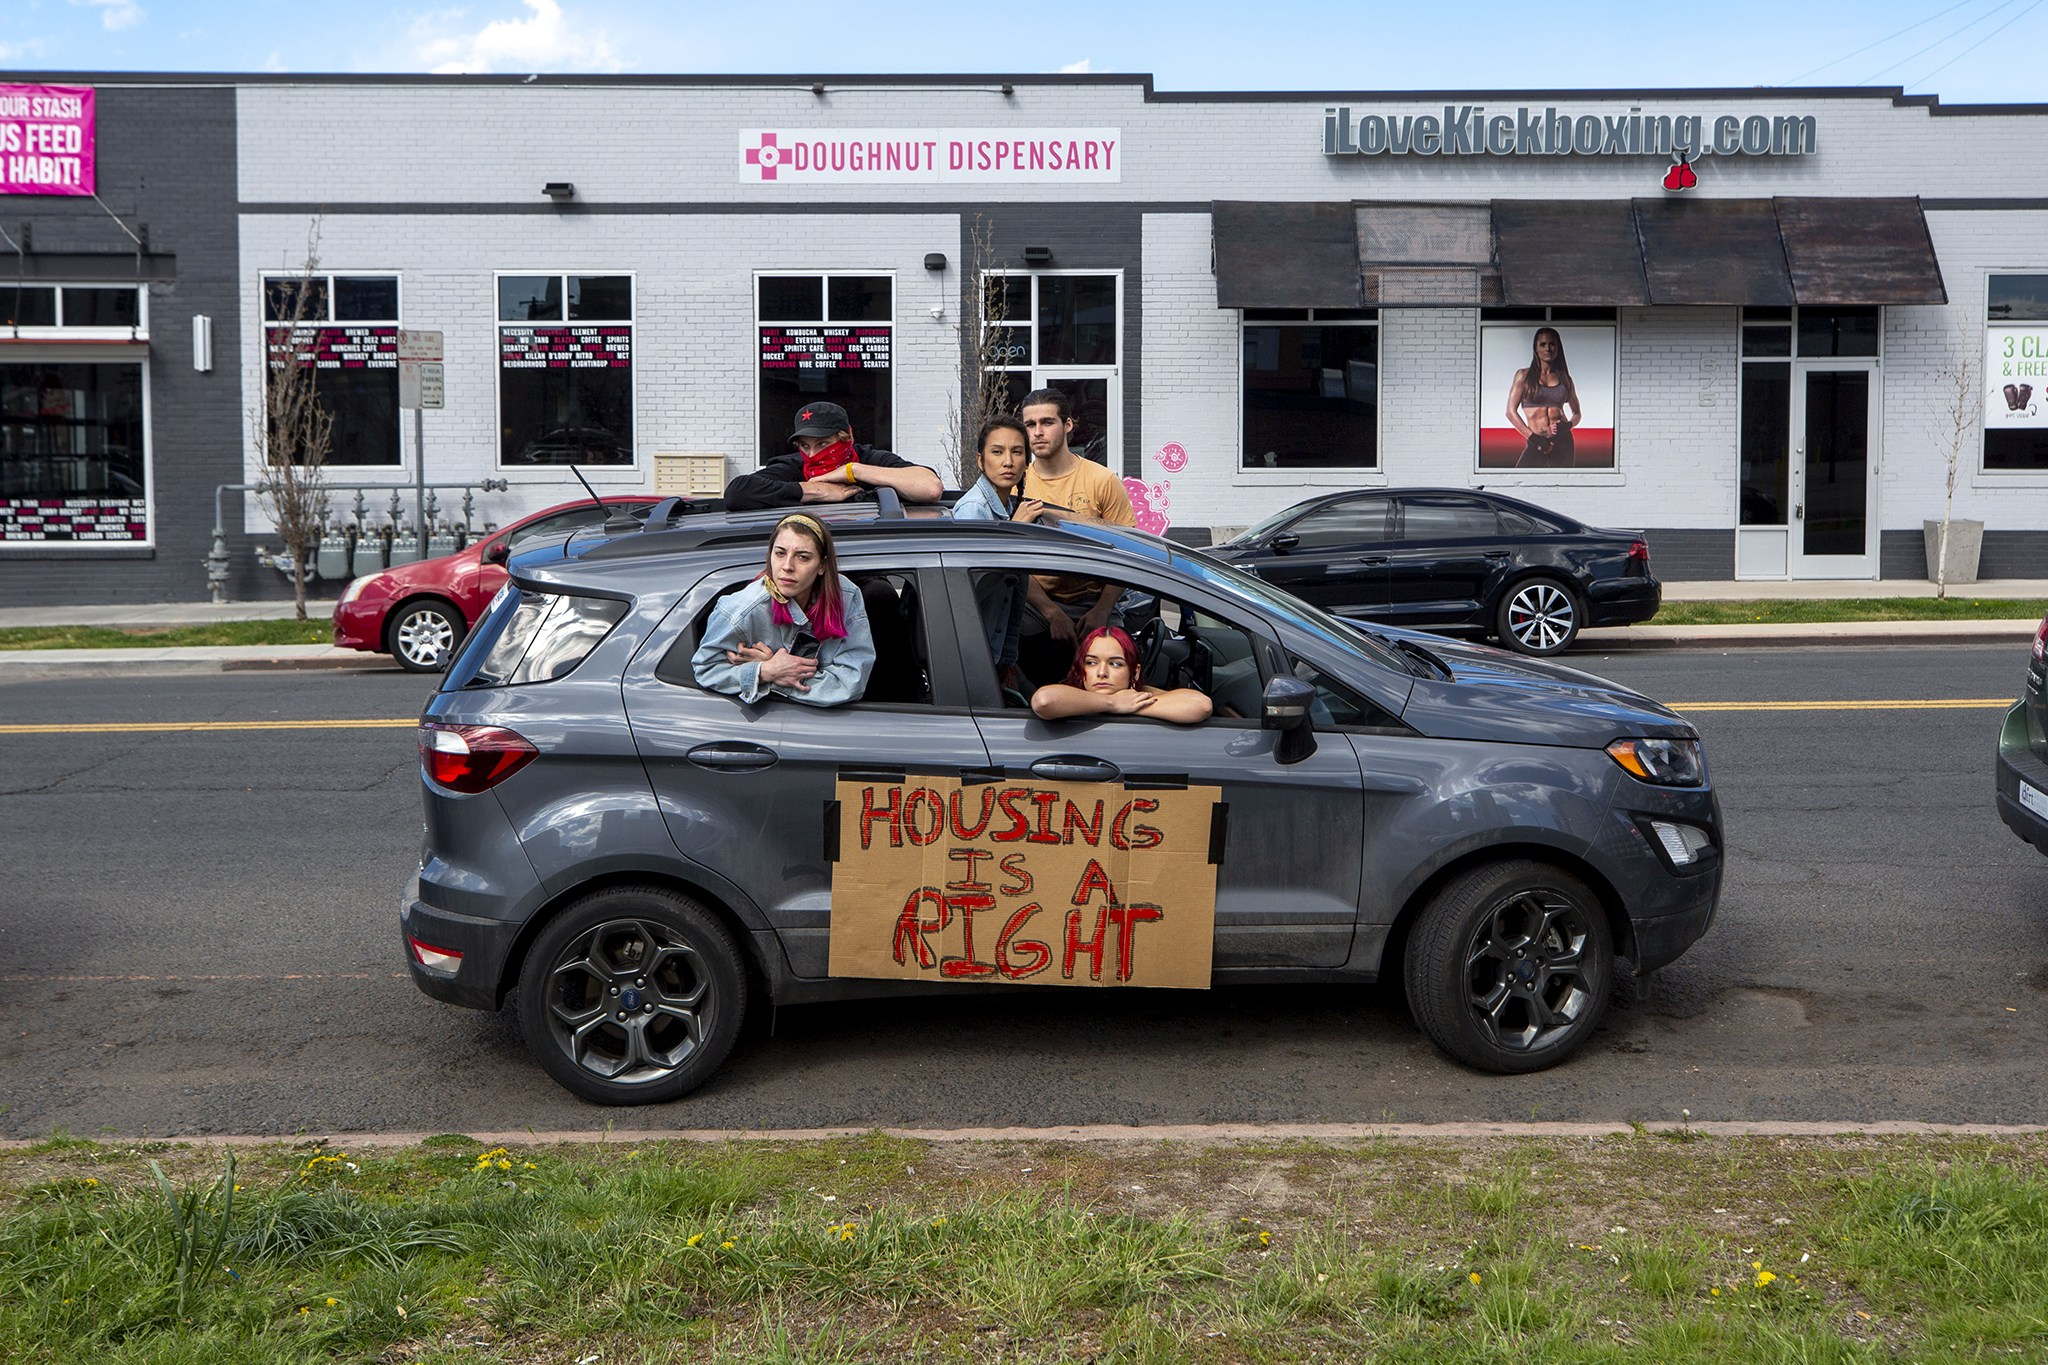 """Image of protestors in a caravan with a sign on the vehicle reading: """"Housing is a Right"""""""